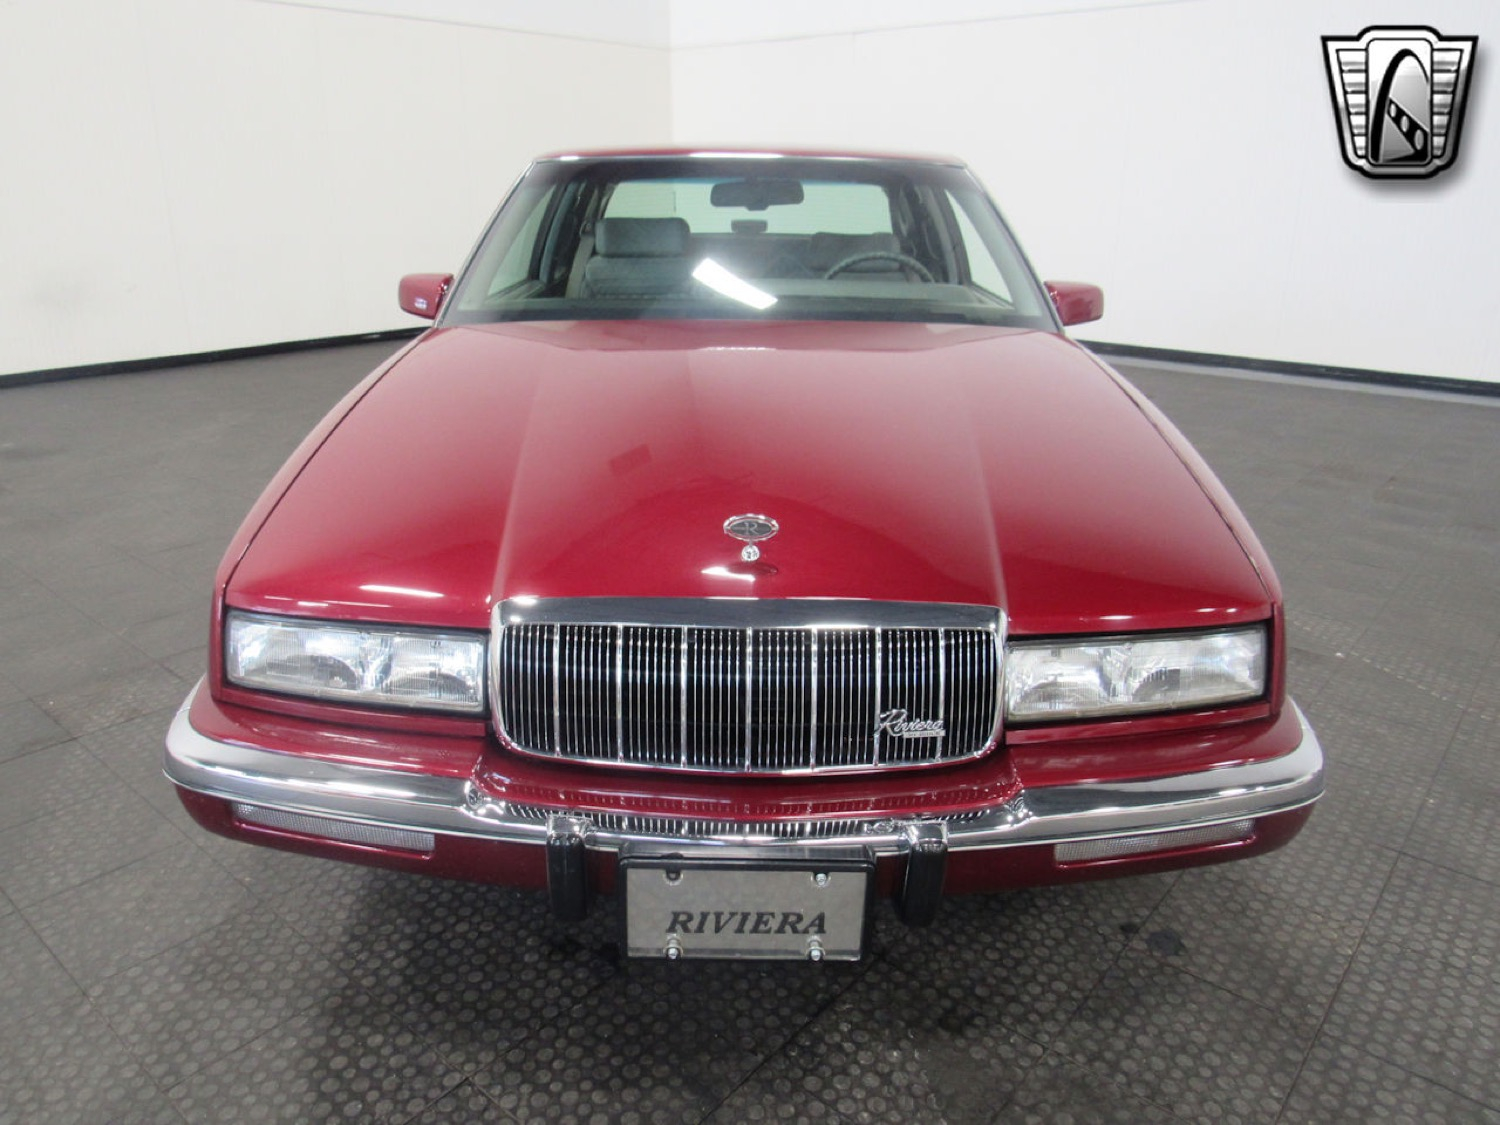 Slick 1992 Buick Riviera For Sale: Video | Gm Authority 2022 Buick Riviera Pictures, Grill, Models